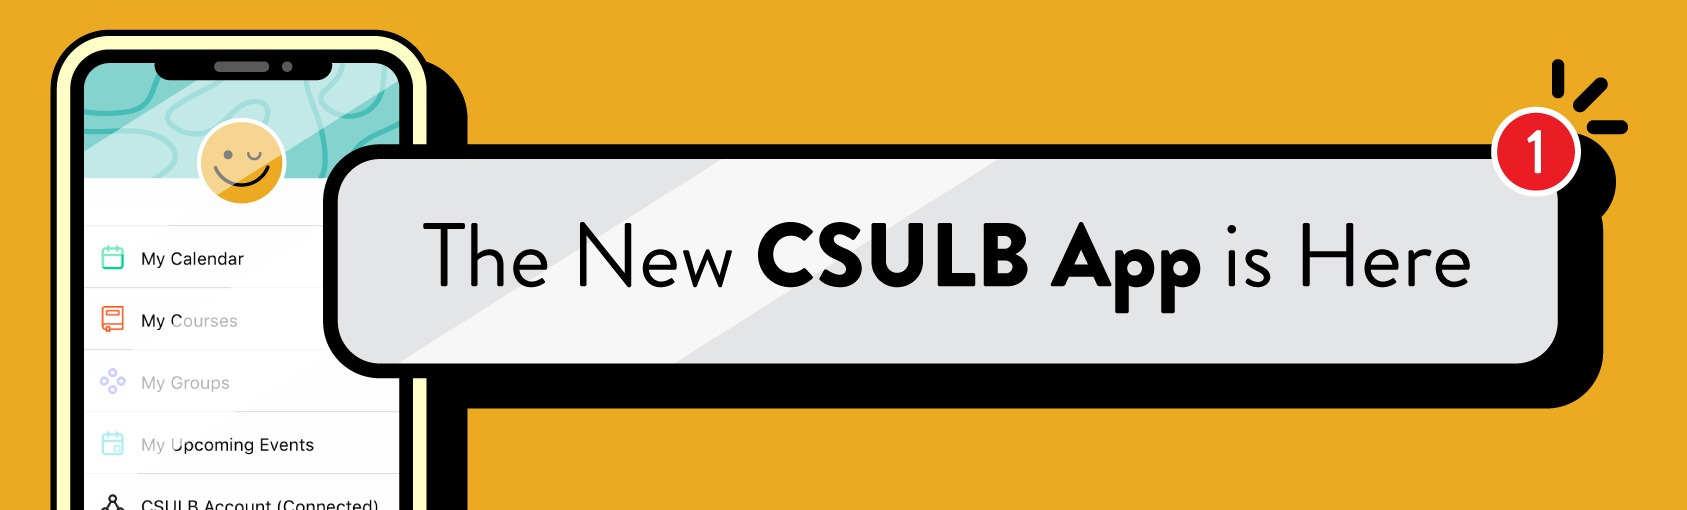 New CSULB App is Here